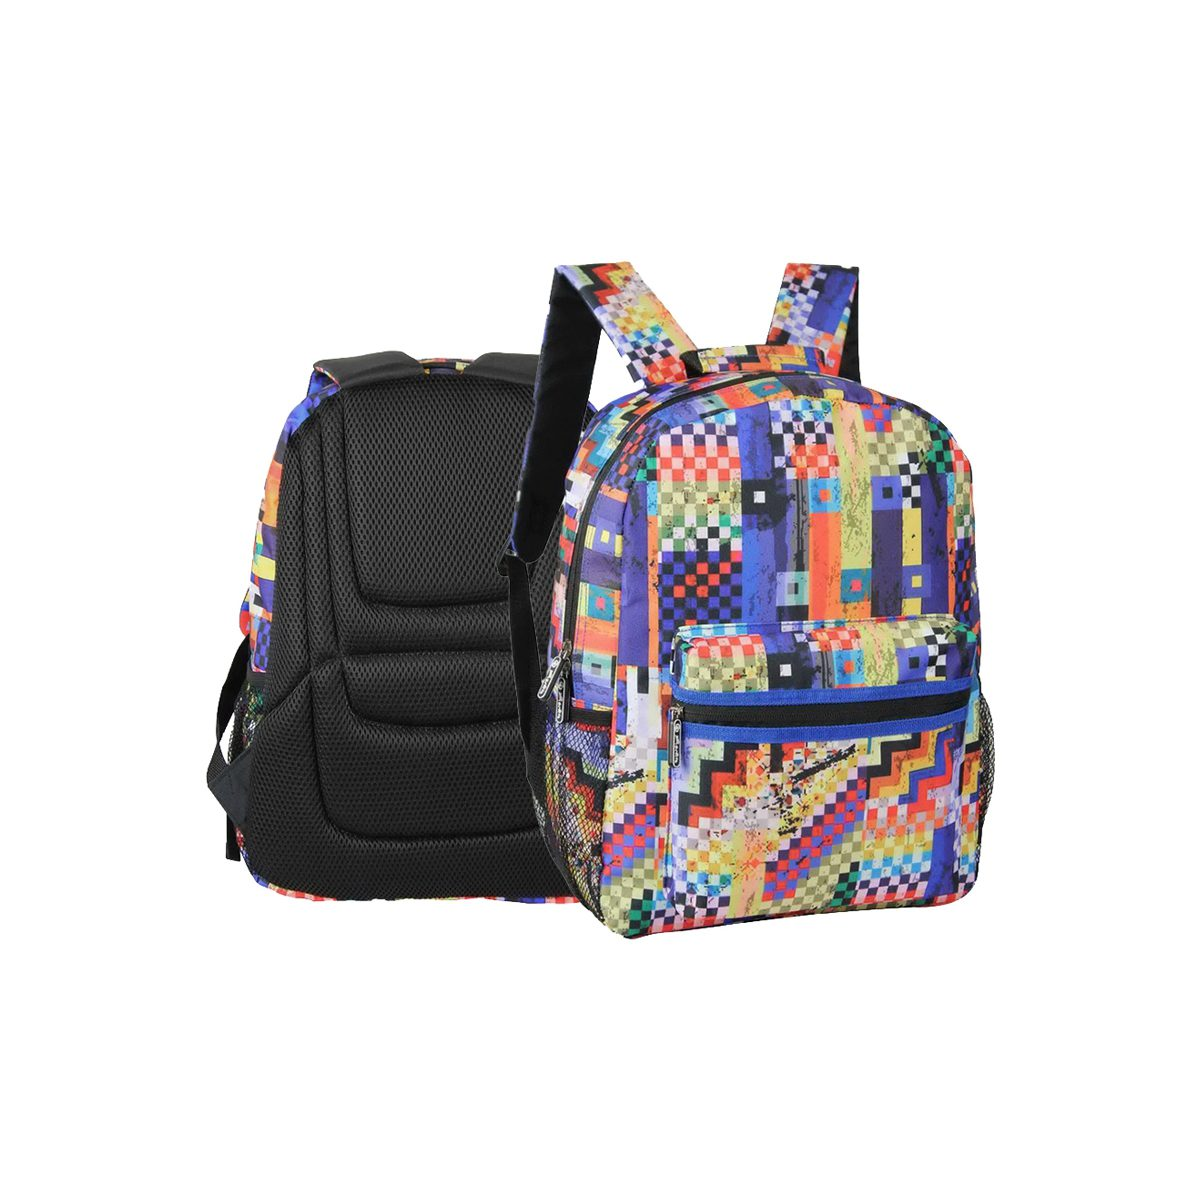 Rucsac cu un Compartiment, Colorful Checkered, Herlitz, 9465320